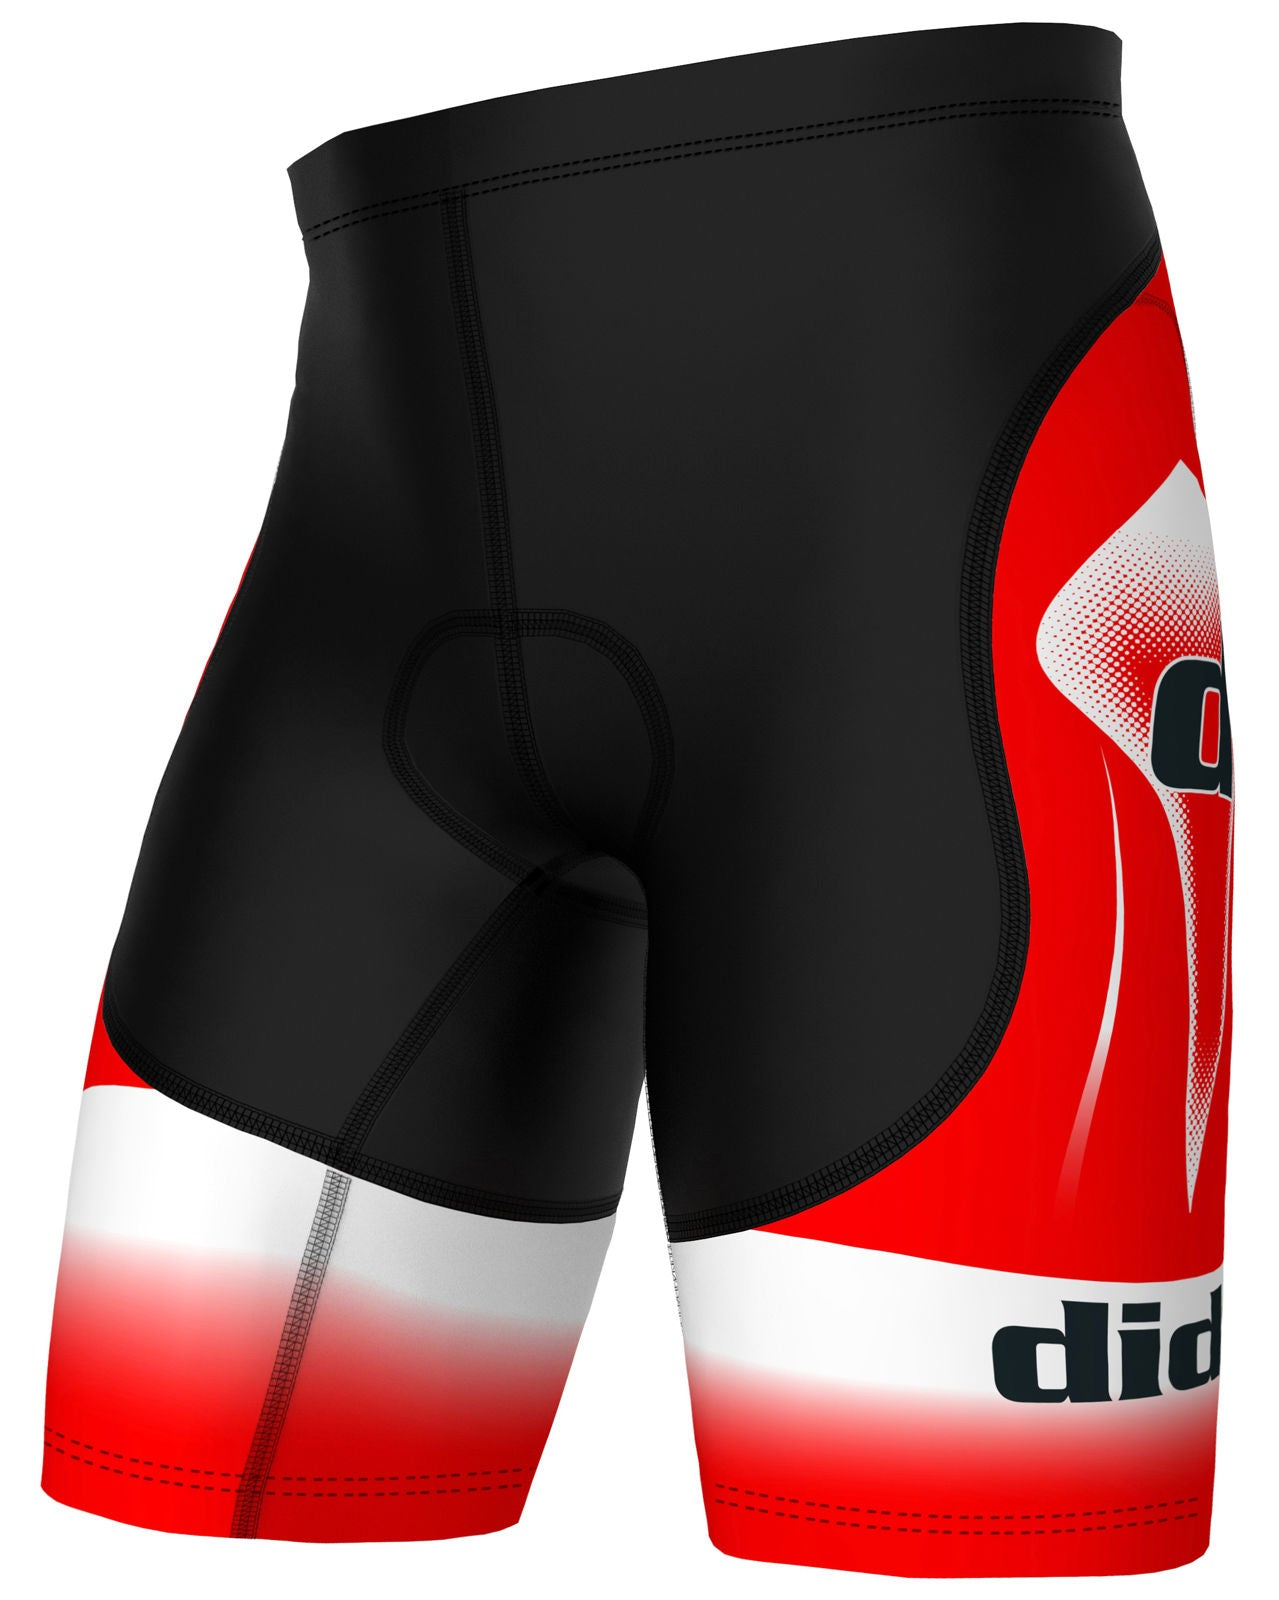 DiDoo Men's Classic Cycling Shorts